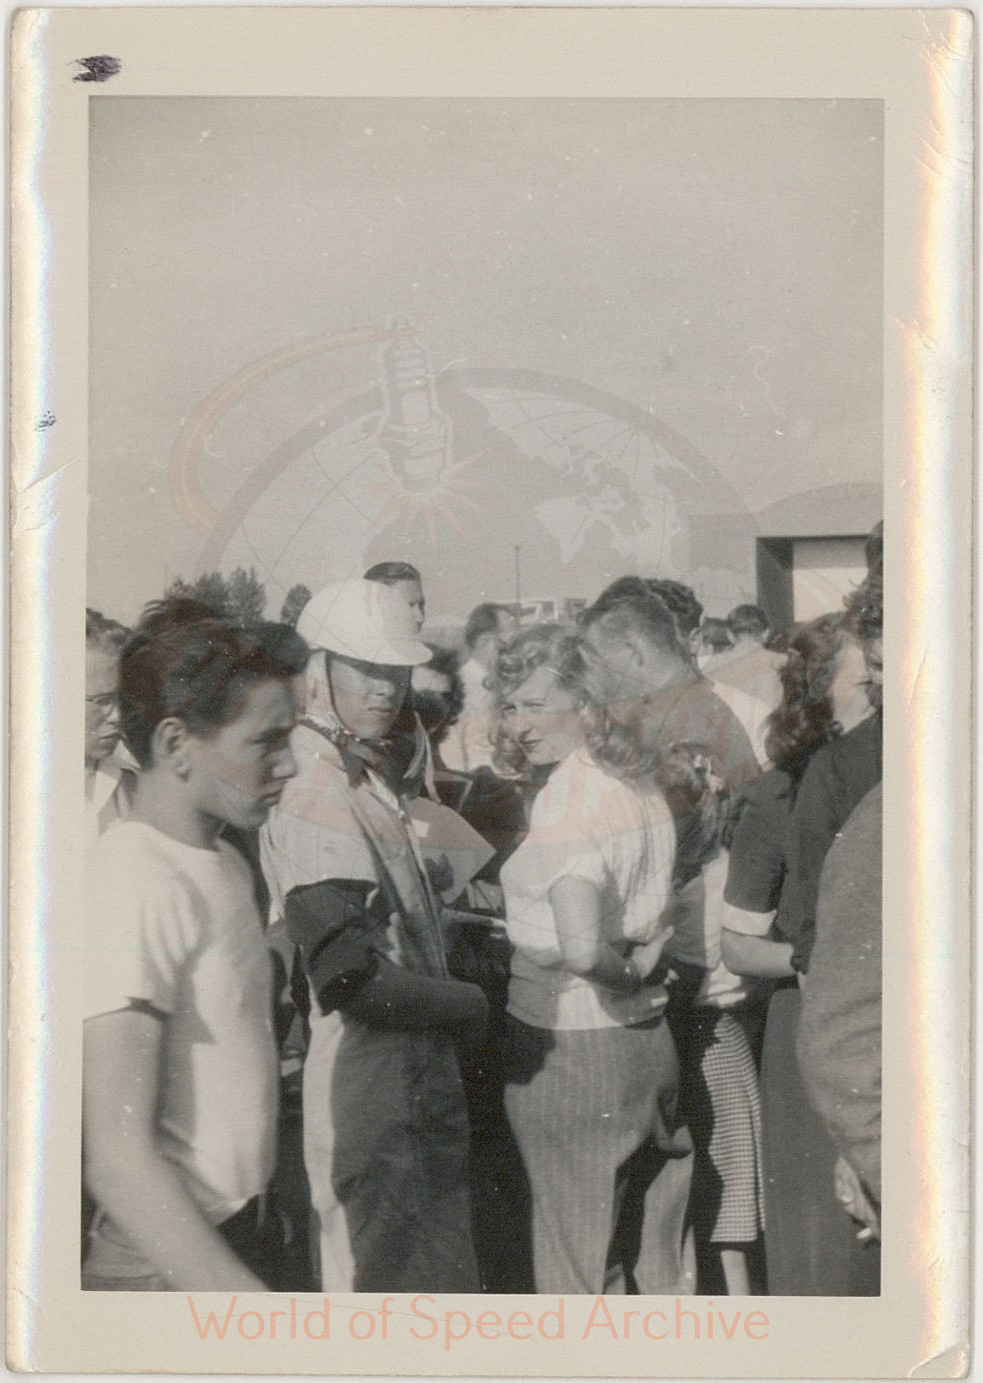 WOS#3786 - GM07 p109: Jimmy Martin, wearing helmet, in crowd